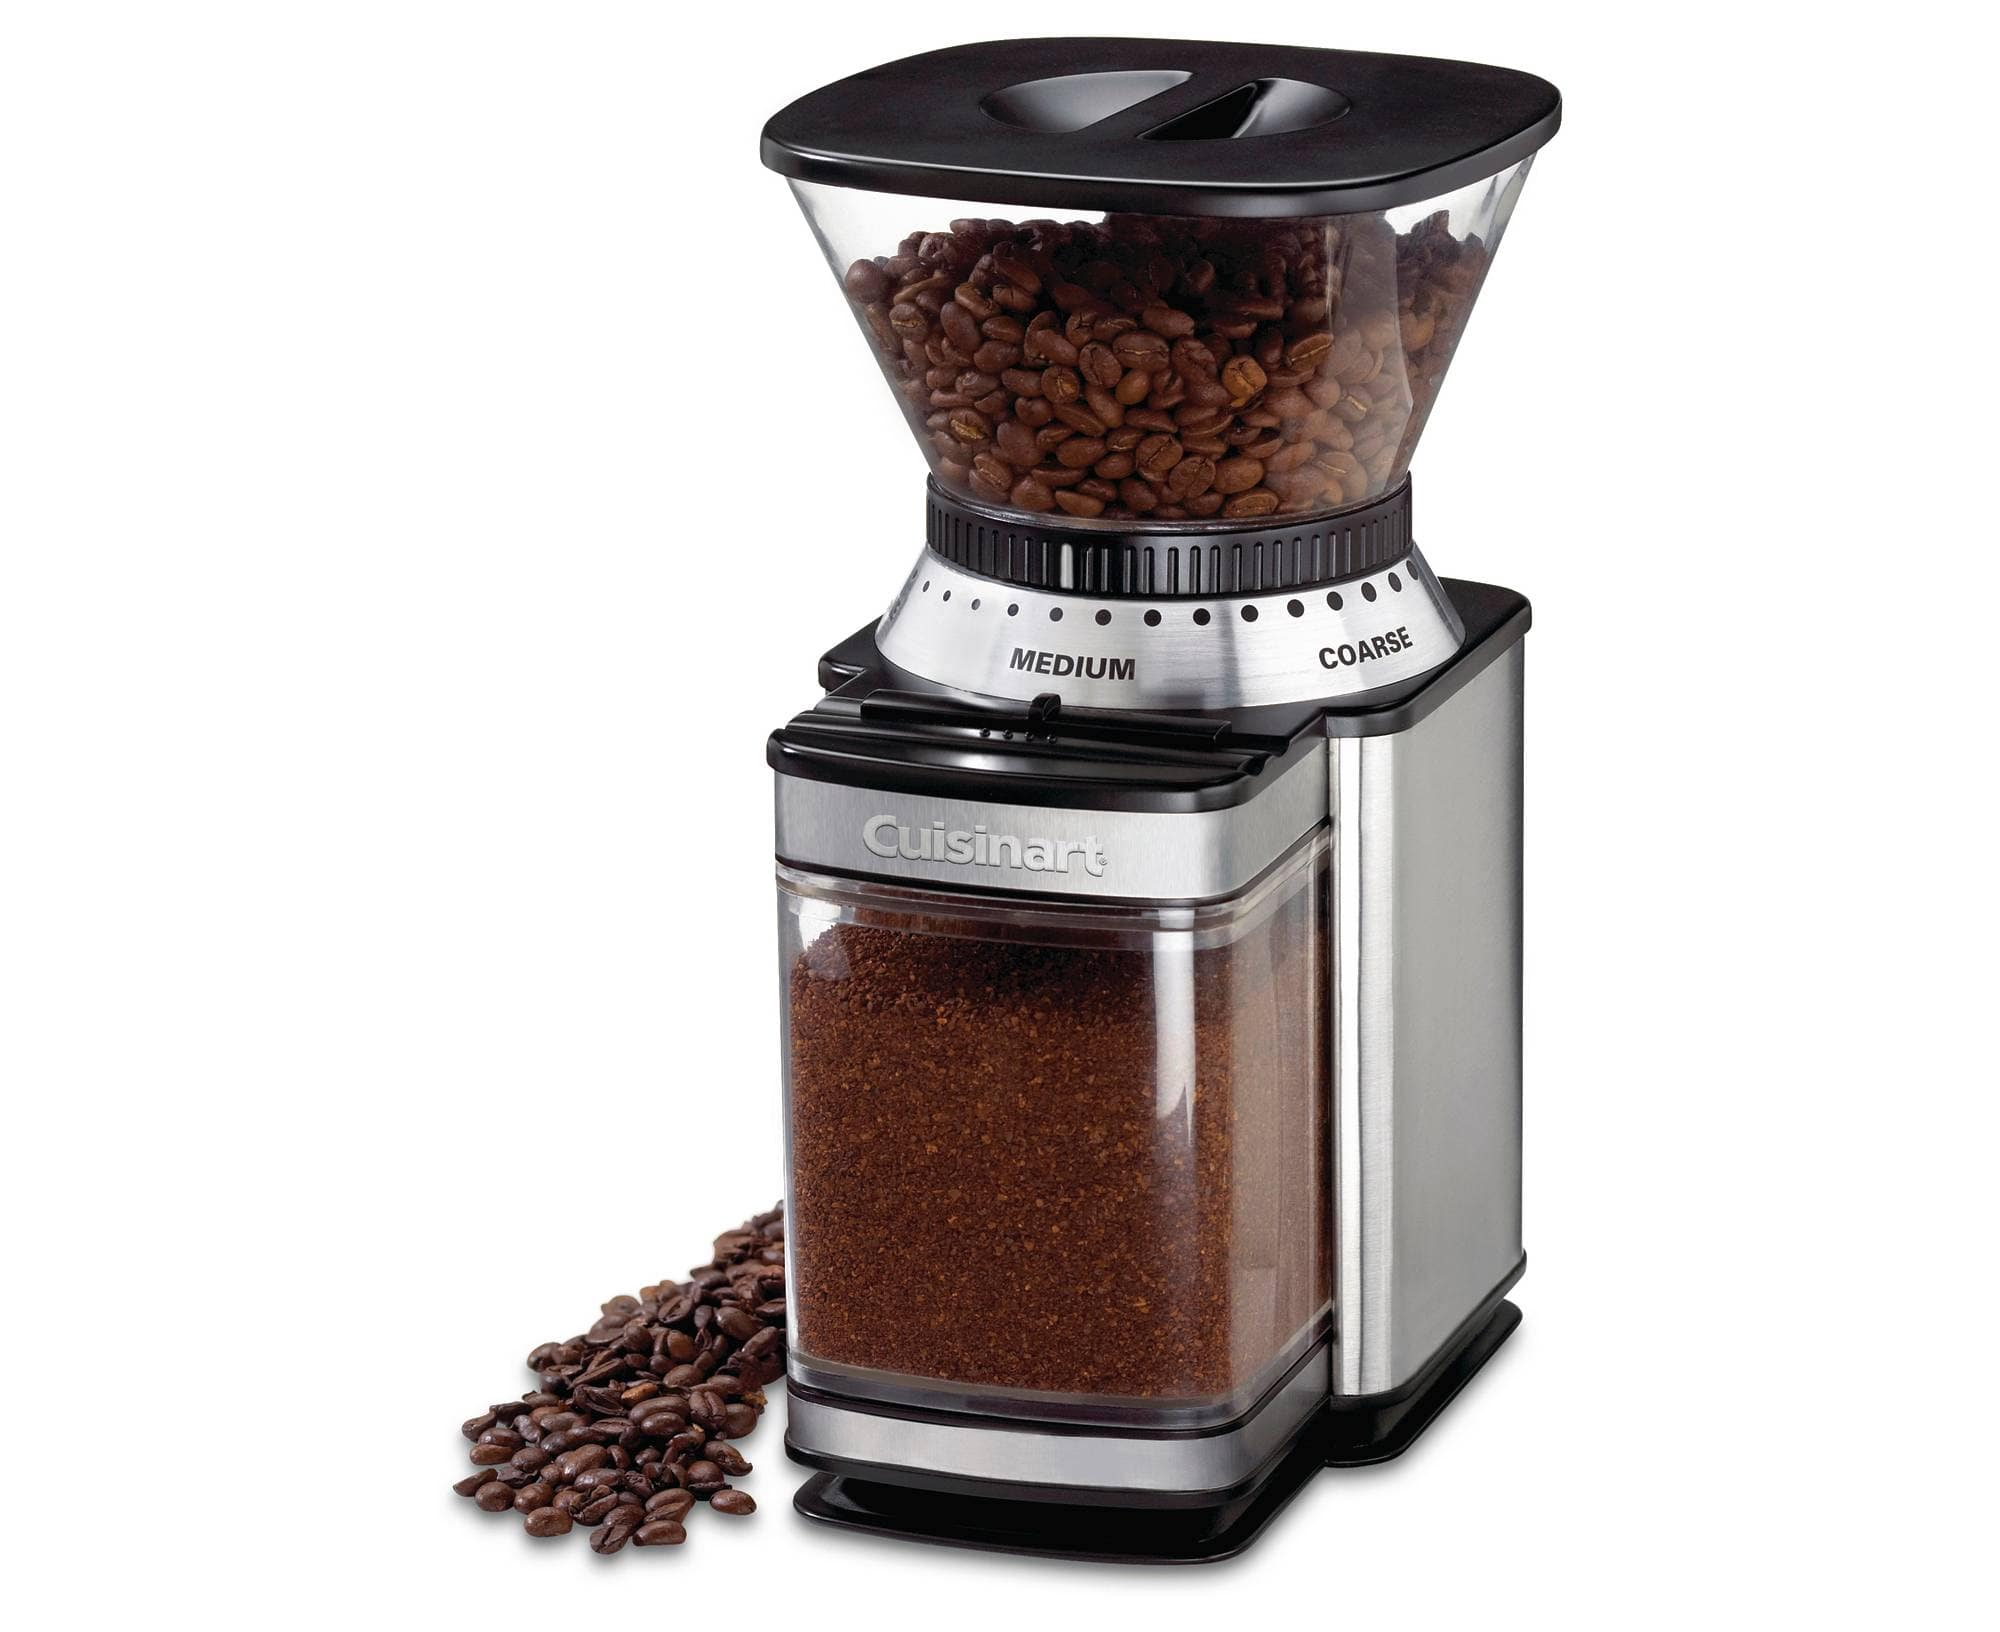 Target Cuisinart Automatic Burr mill coffee grinder $39.99 with $10 in Giftcard plus FS